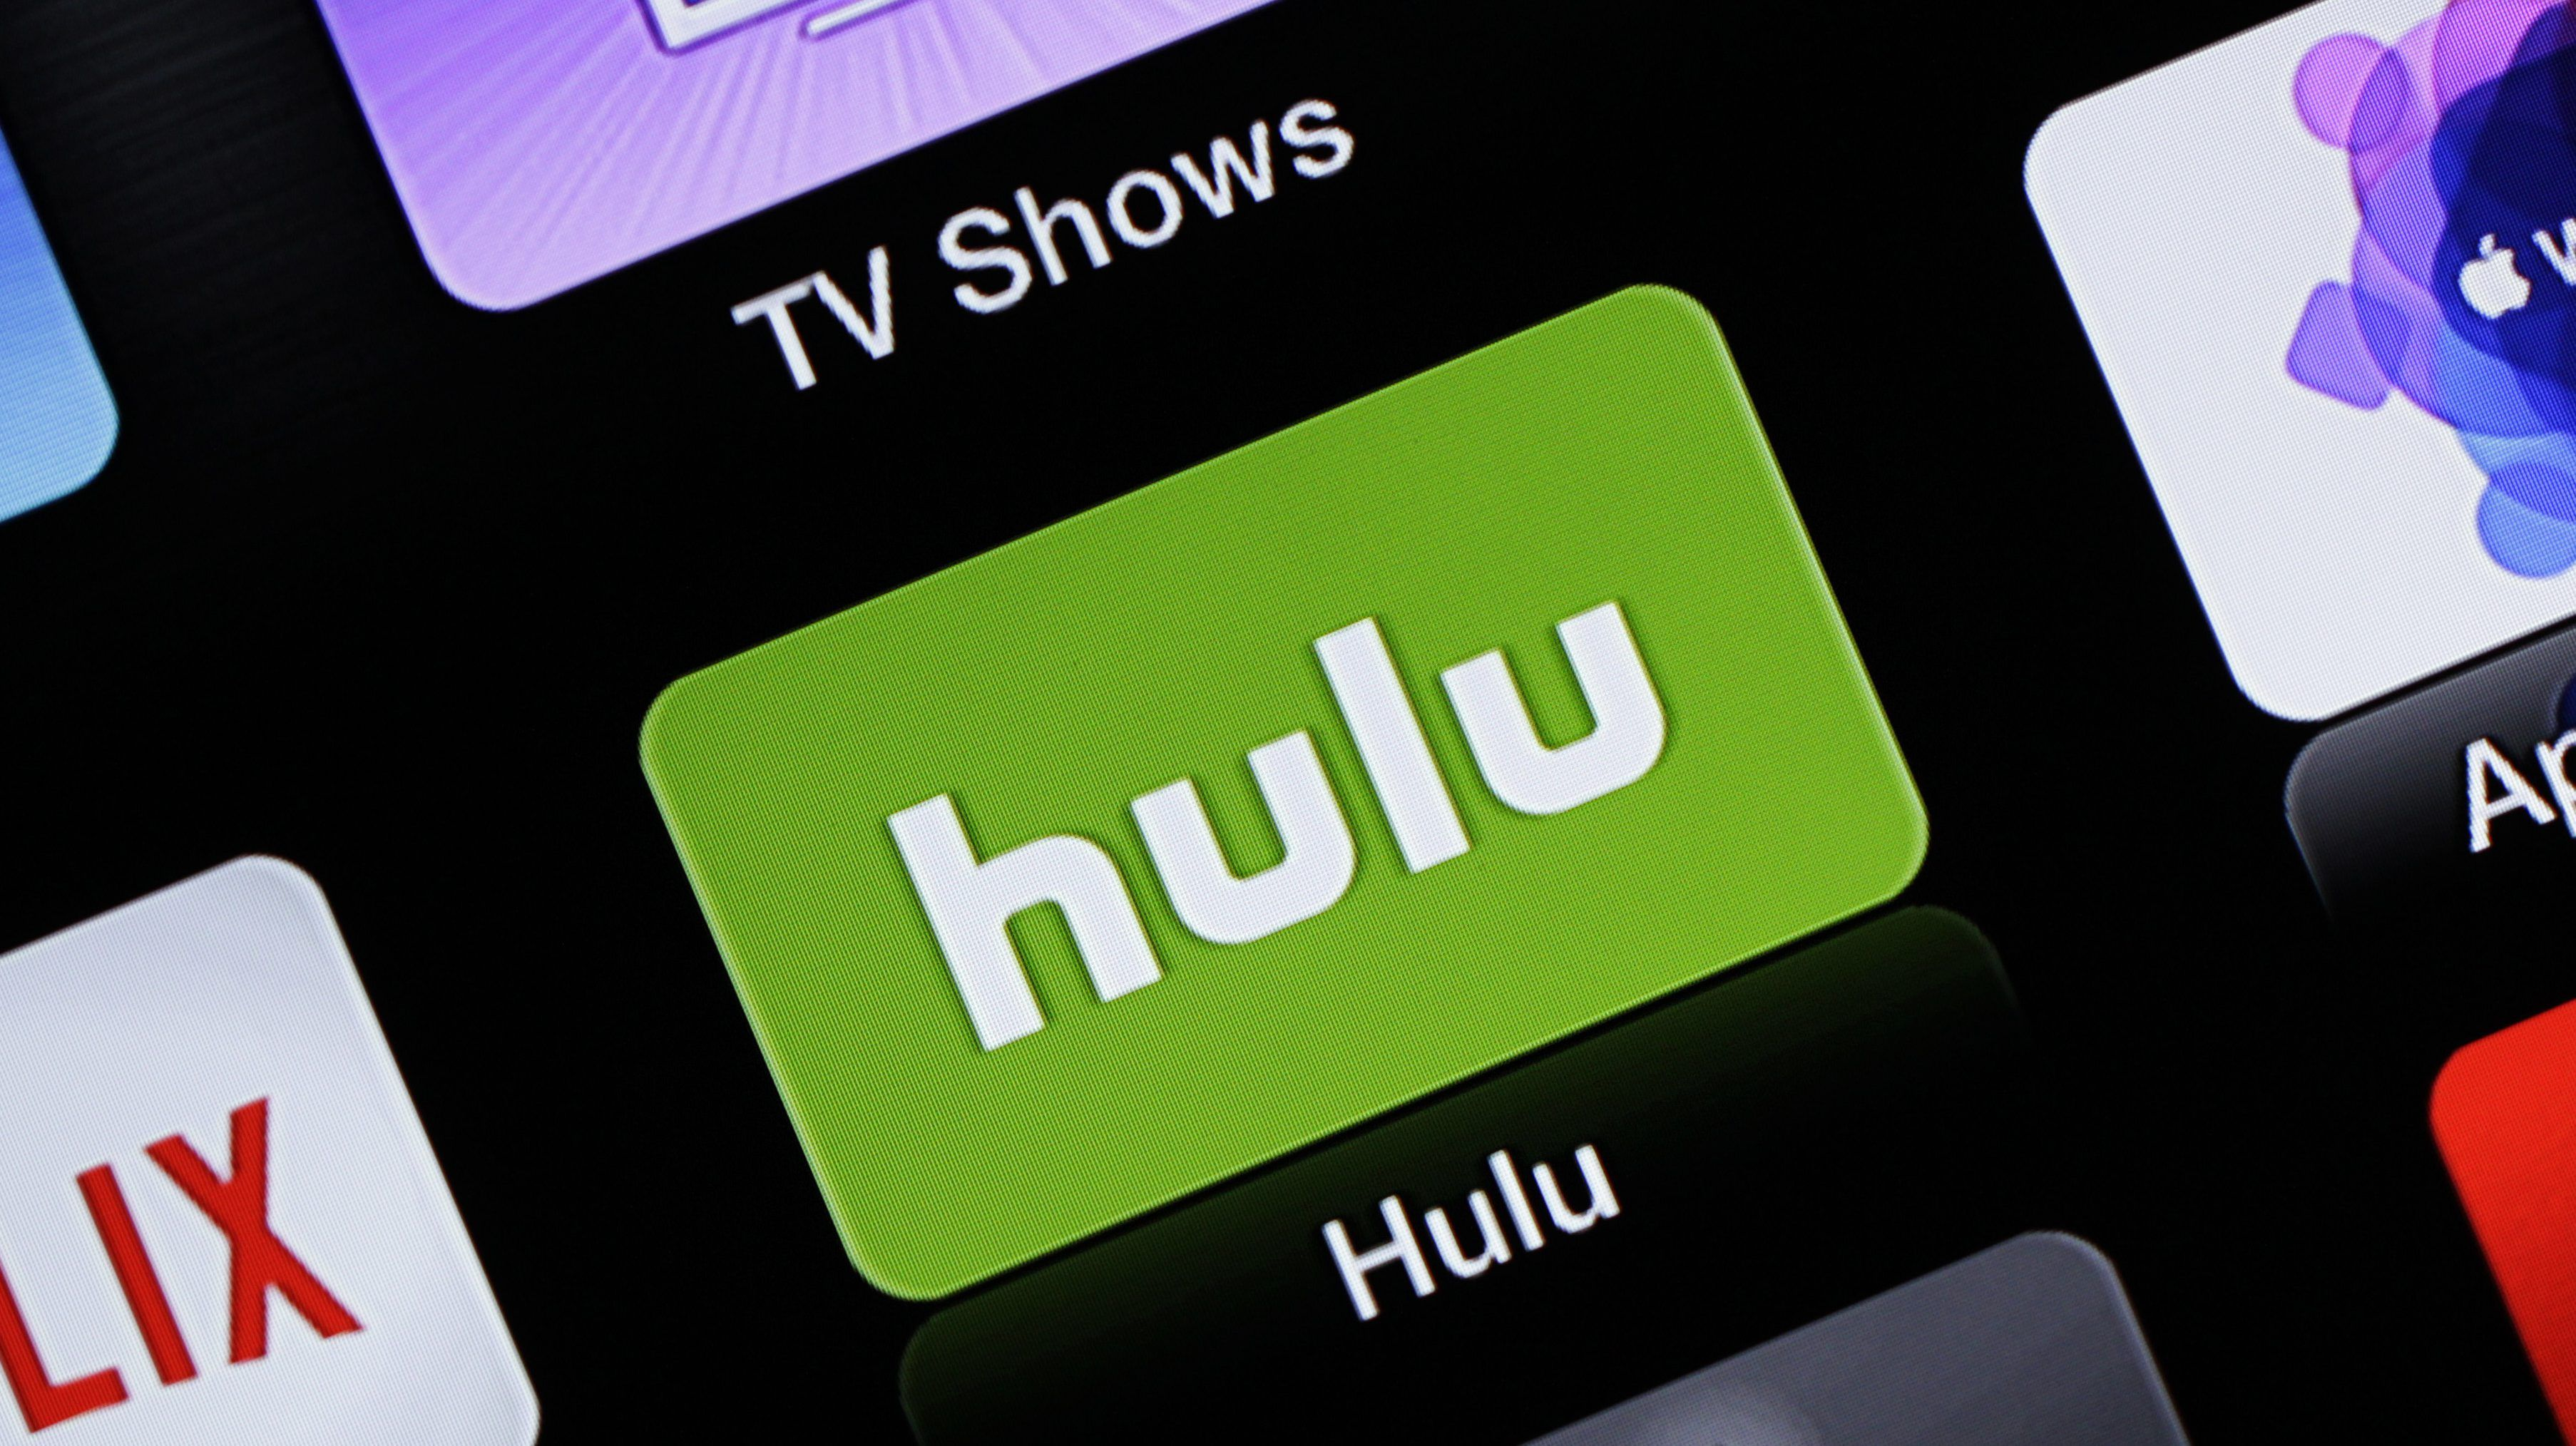 QnA VBage Hulu is getting cheaper, if you can put up with the ads